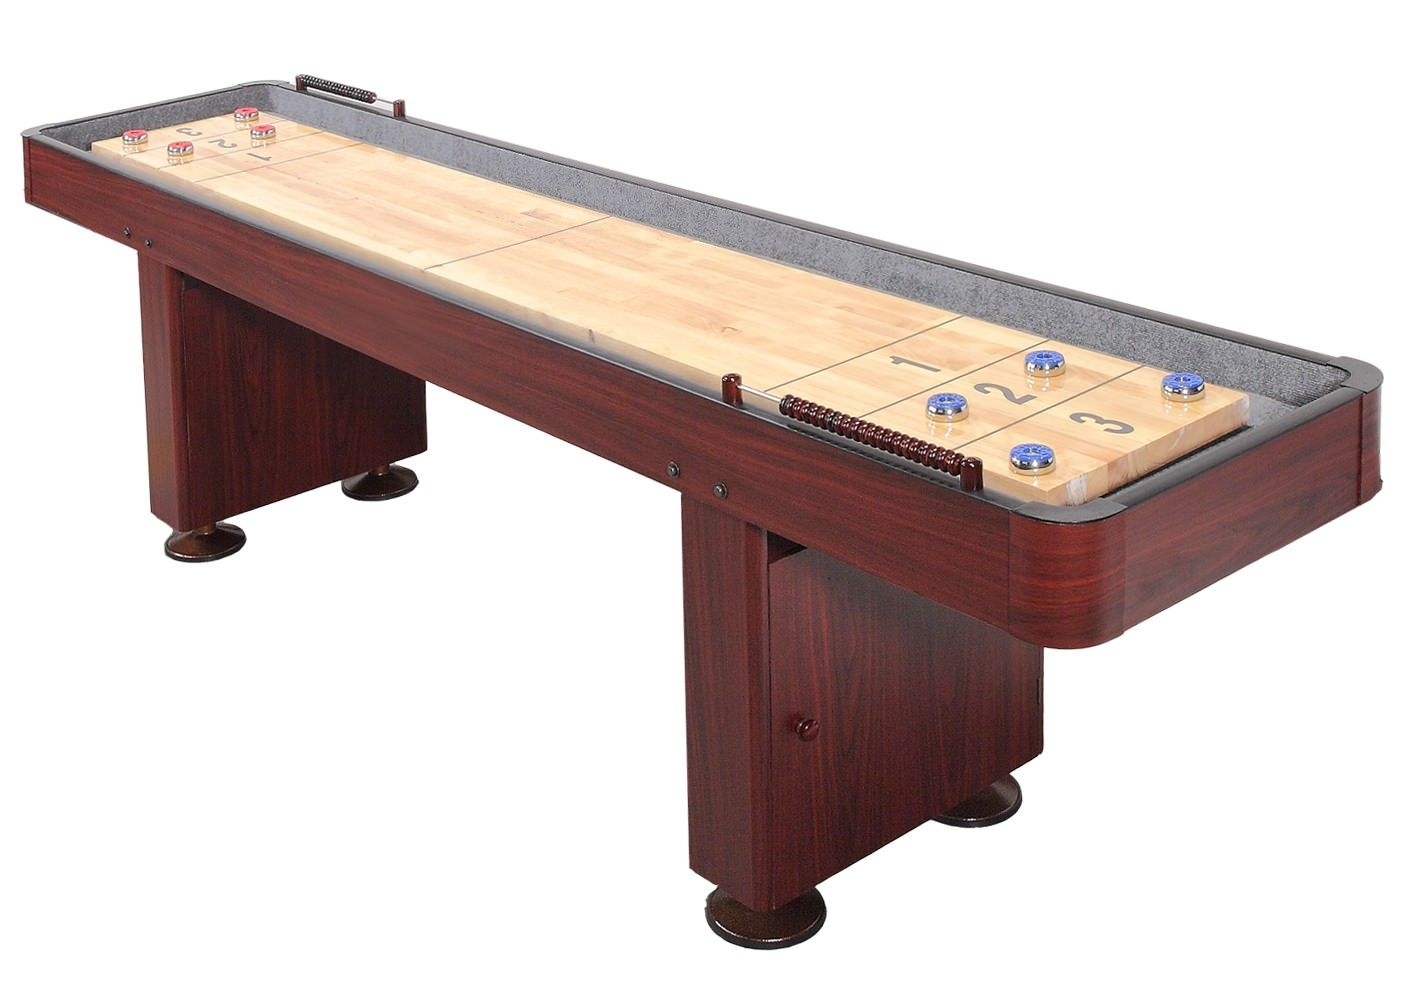 12 Foot Deluxe Shuffleboard Table - Dark Cherry